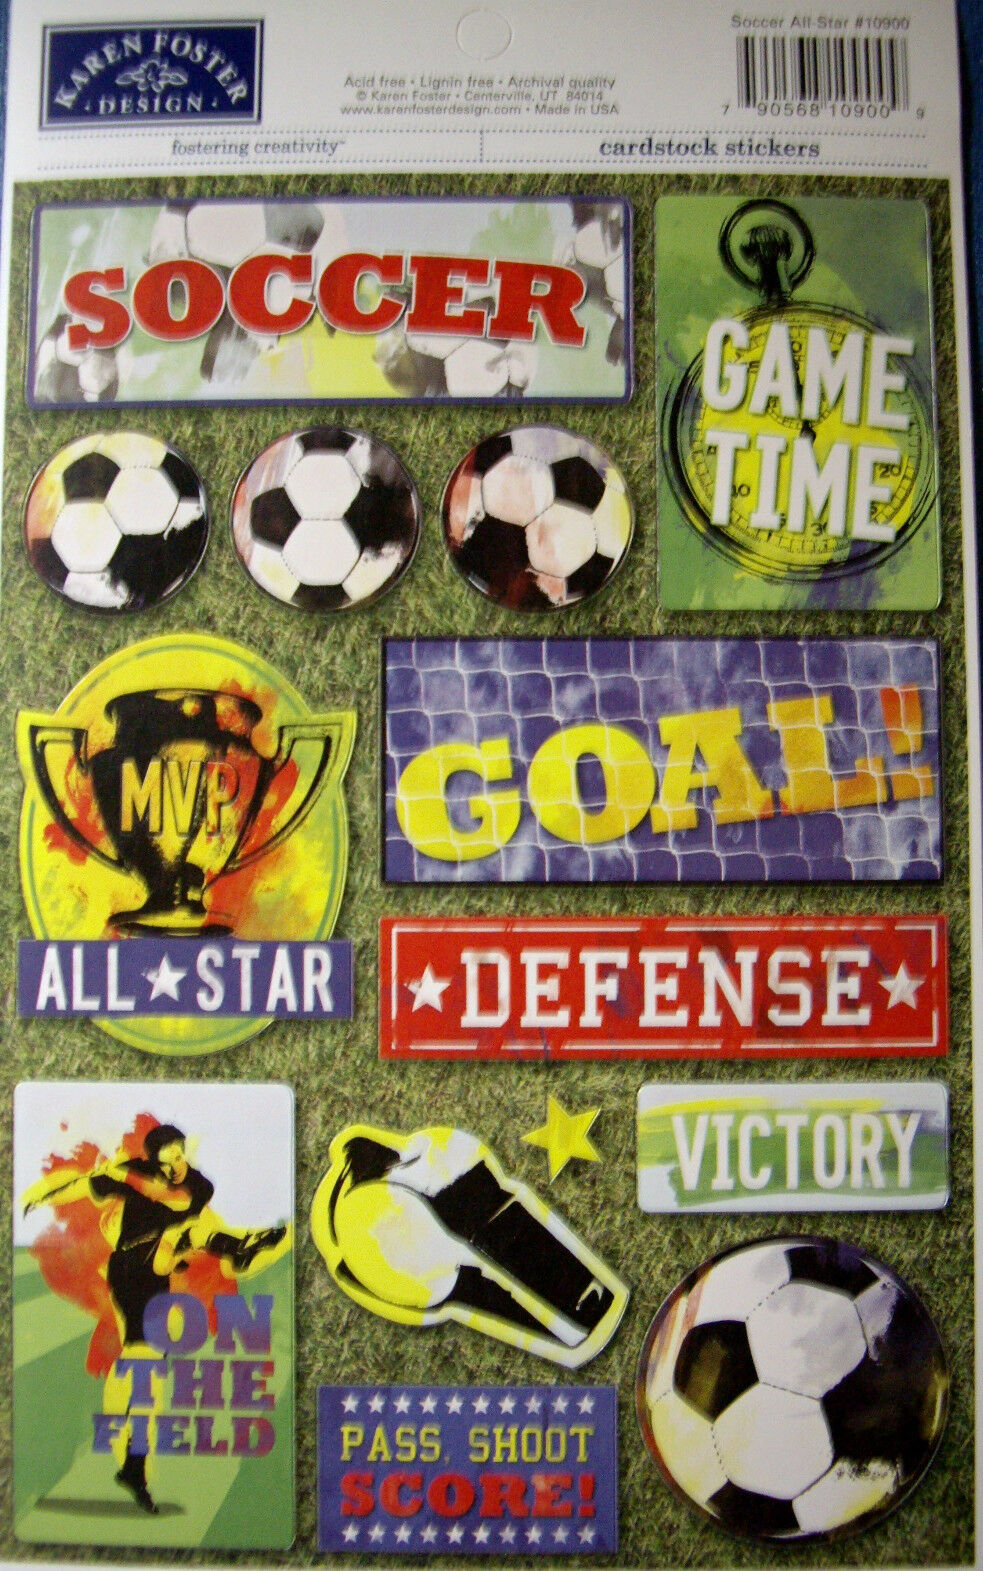 Soccer - Karen Foster Cardstock Sticker - soccer all star